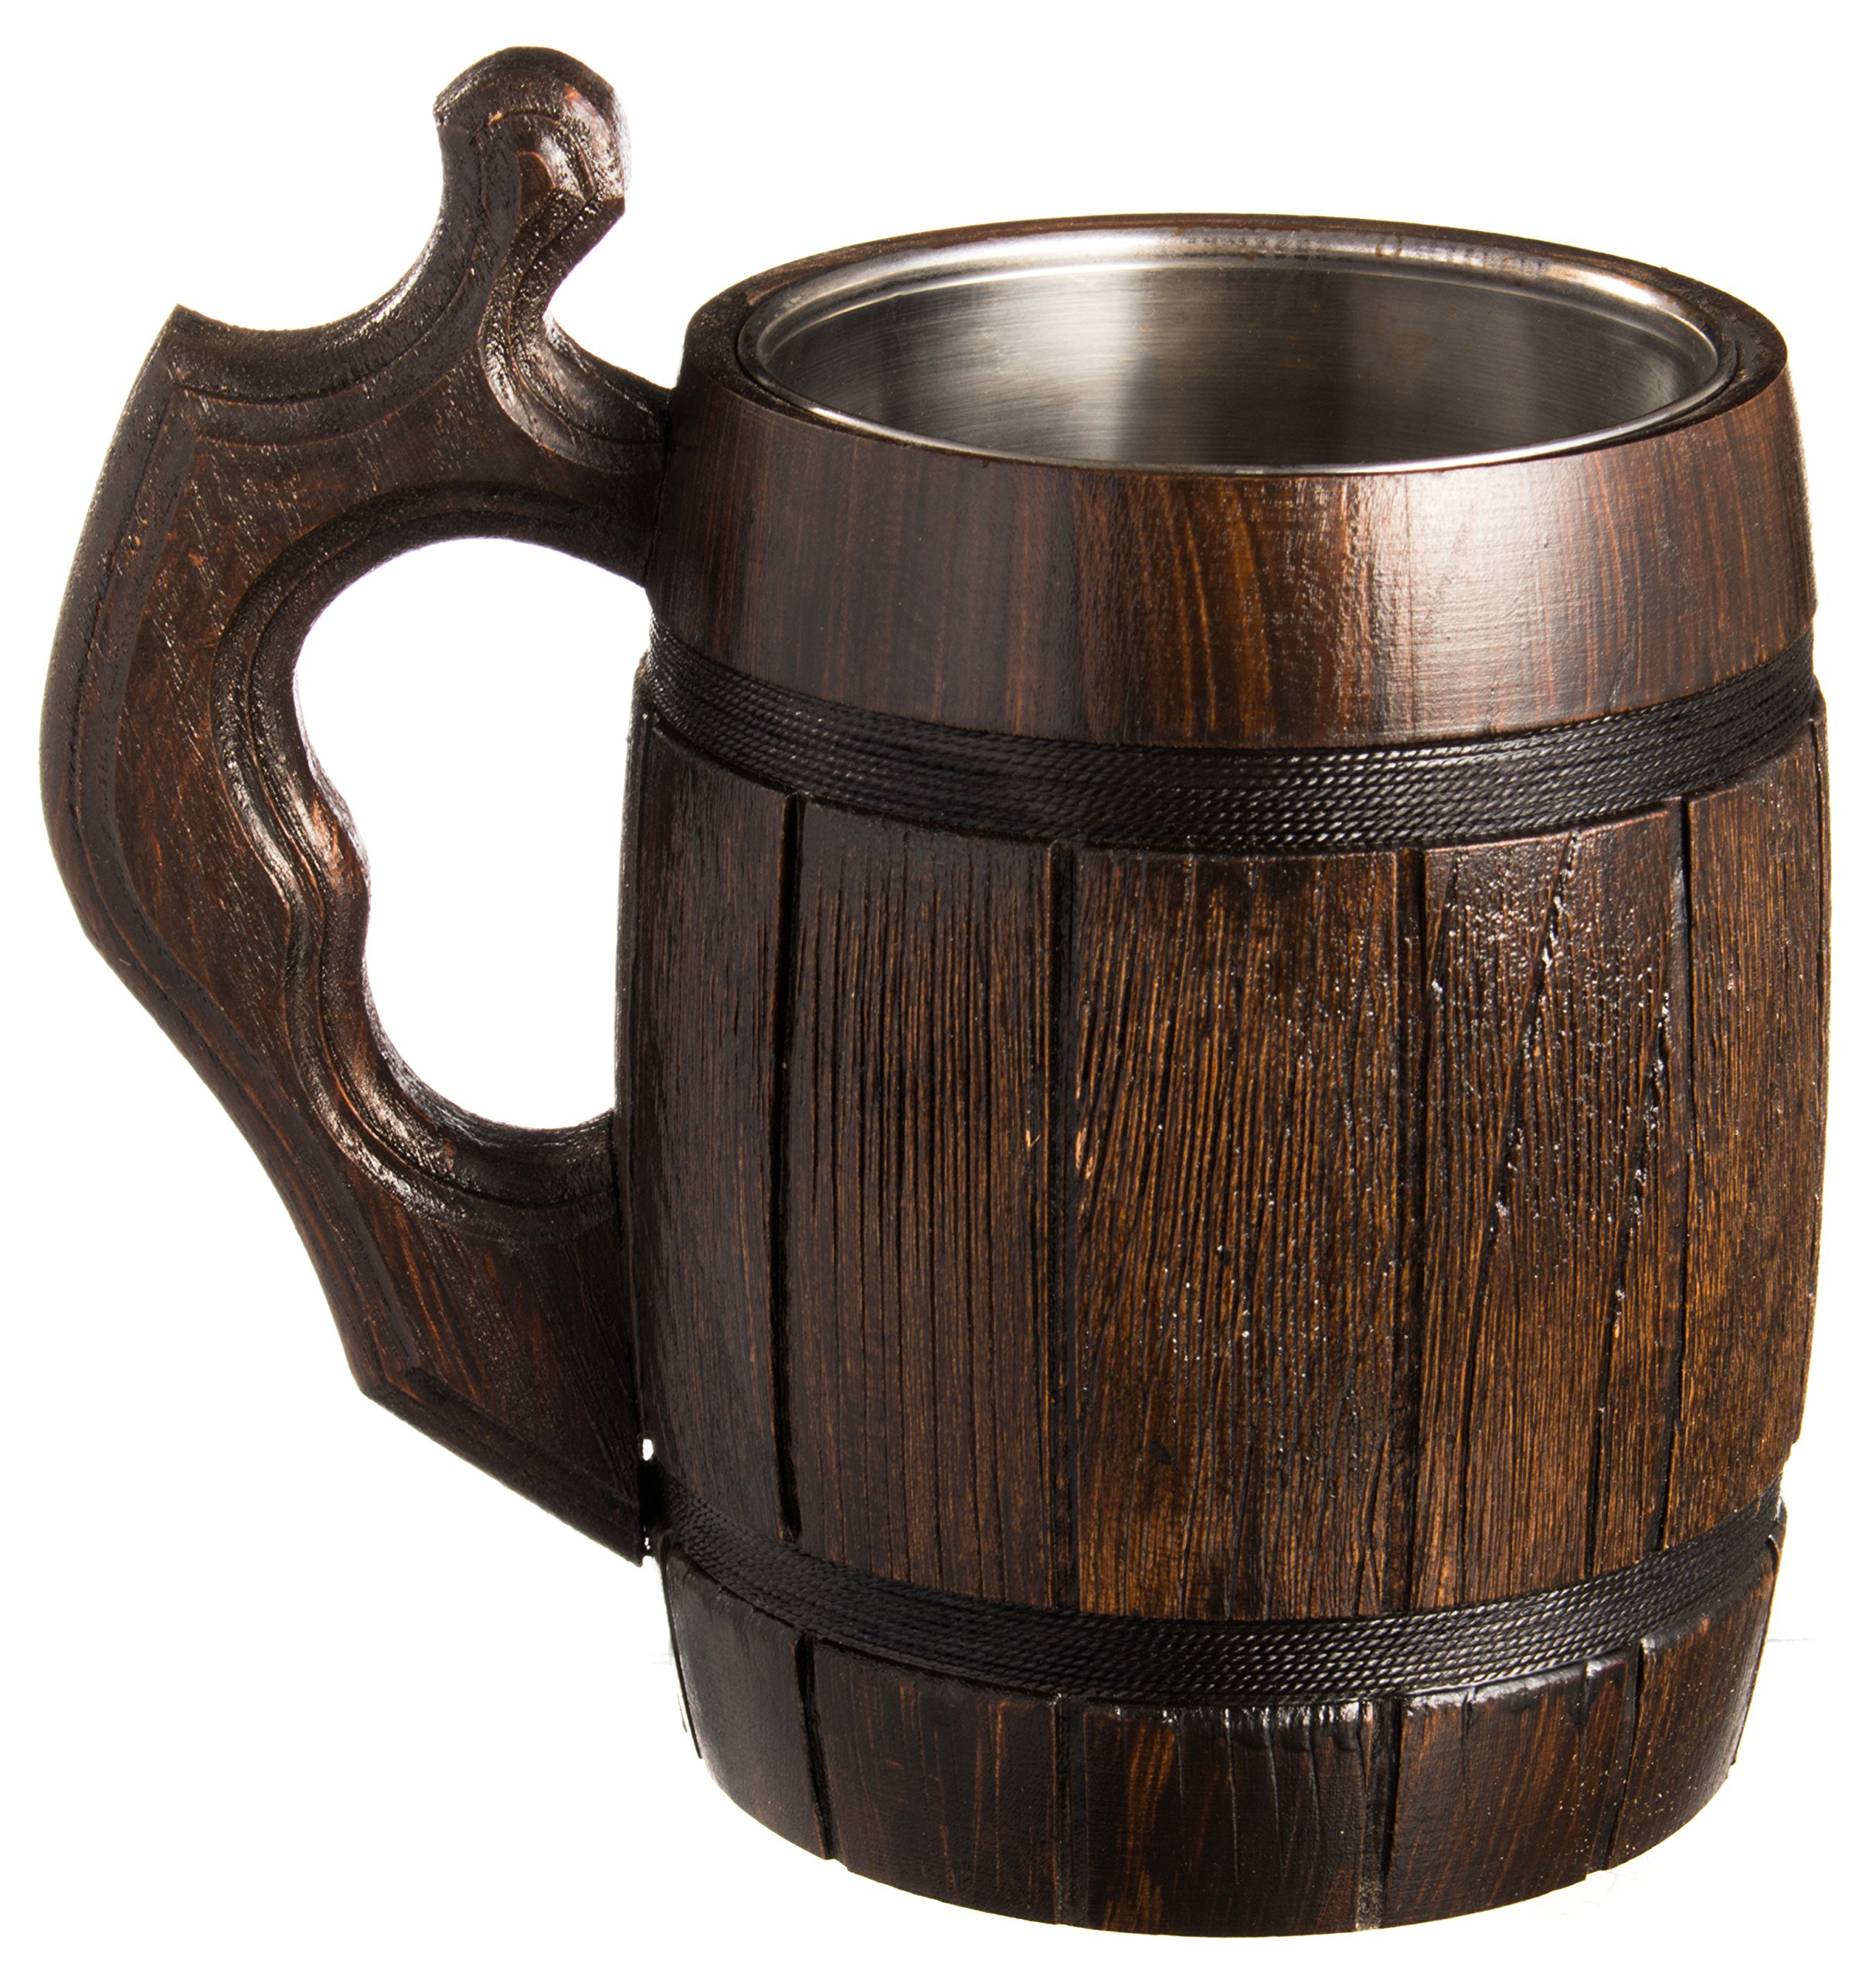 Handmade Beer Mug Set of 6 Wood Natural Stainless Steel Cup Men Gift Eco-Friendly Barrel Souvenir Round Brown by MyFancyCraft (Image #4)